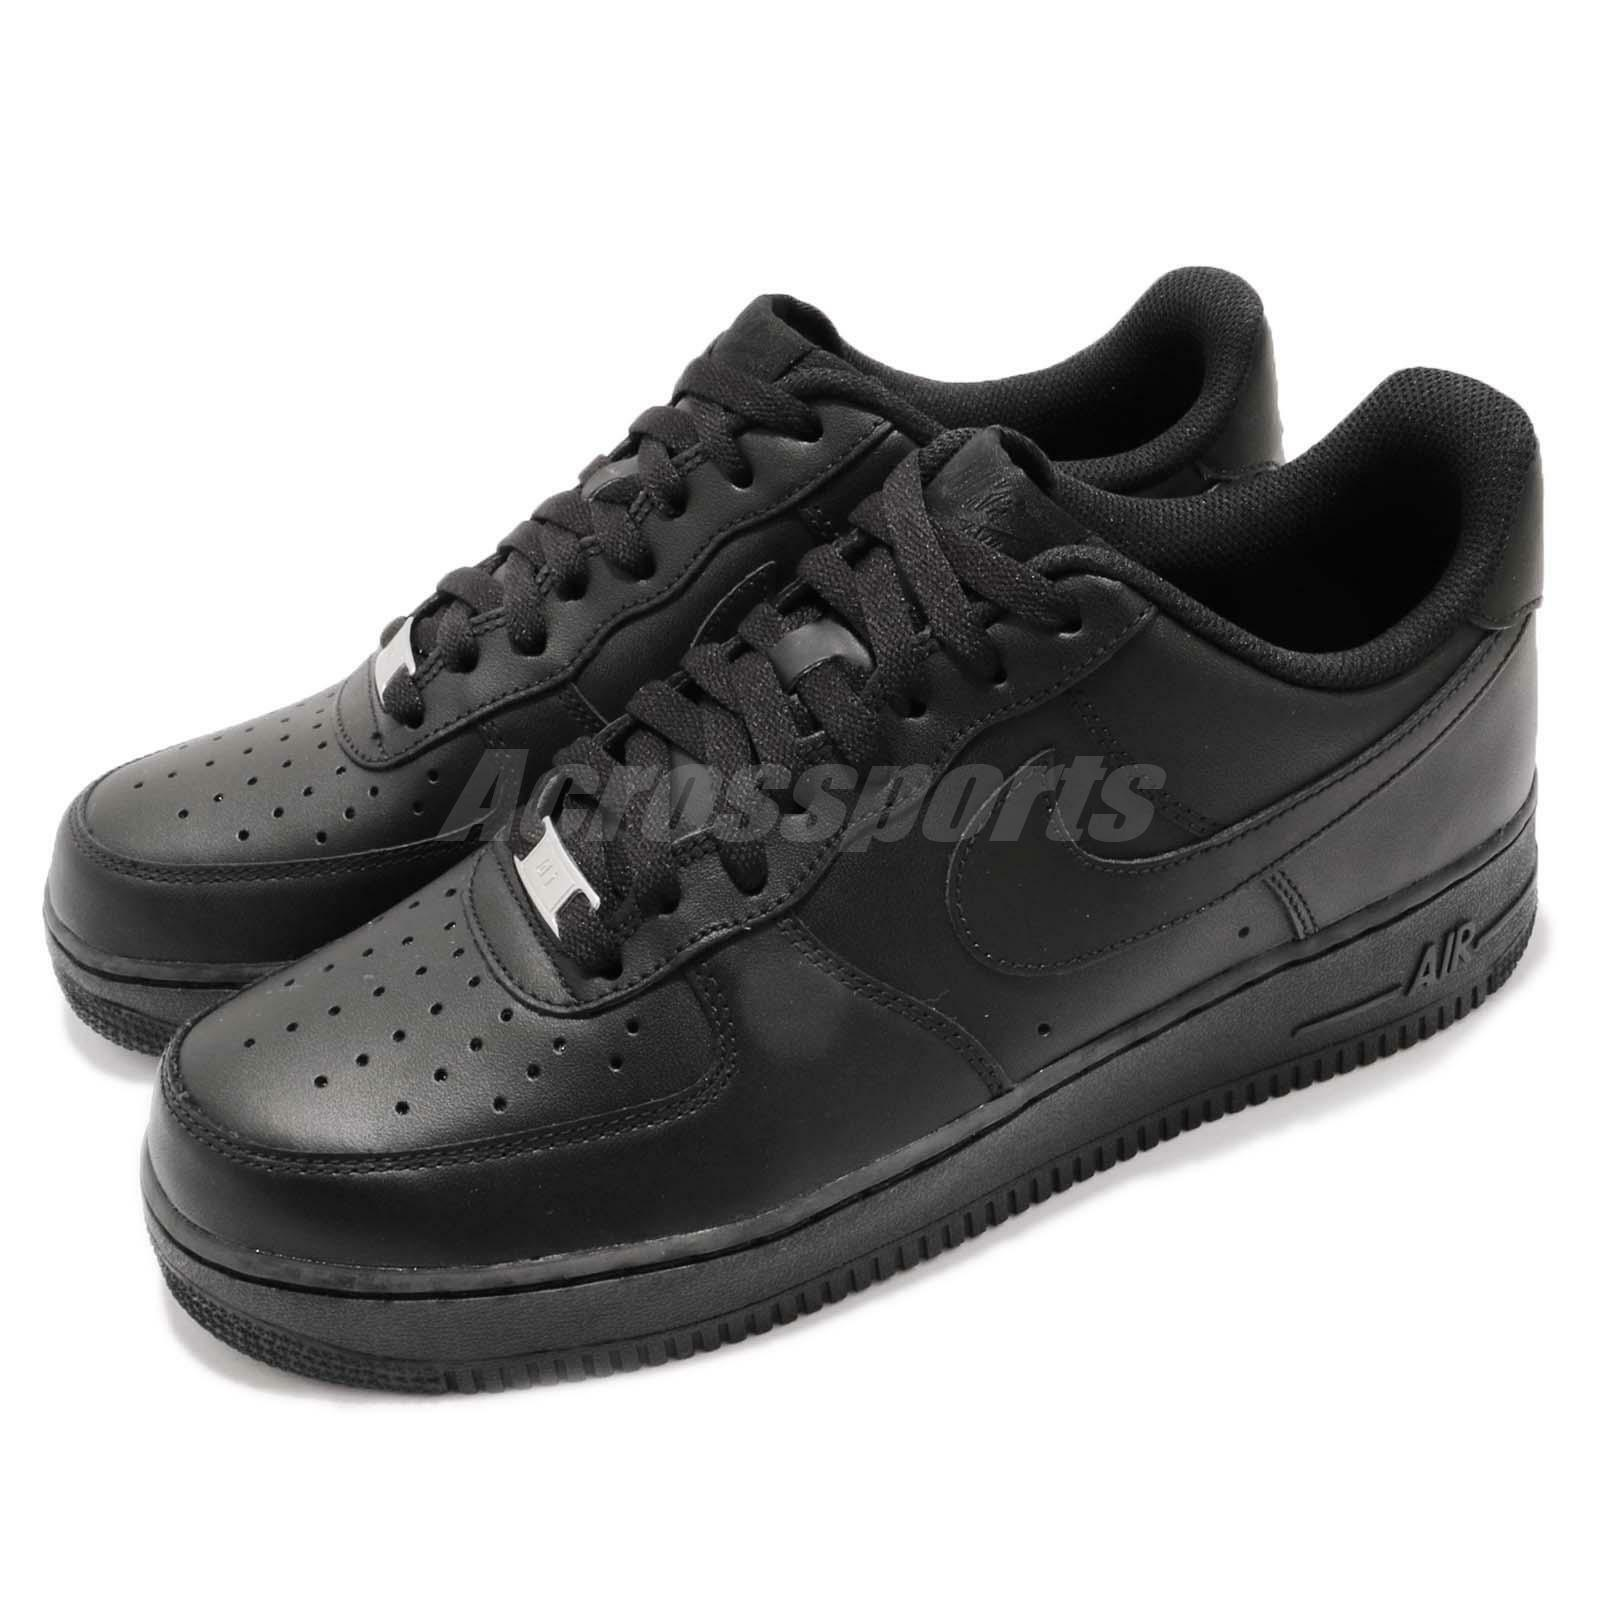 Nike Air Force 1 07 AF1 Triple Noir Hommes Classic Chaussures Sneakers 315122-001